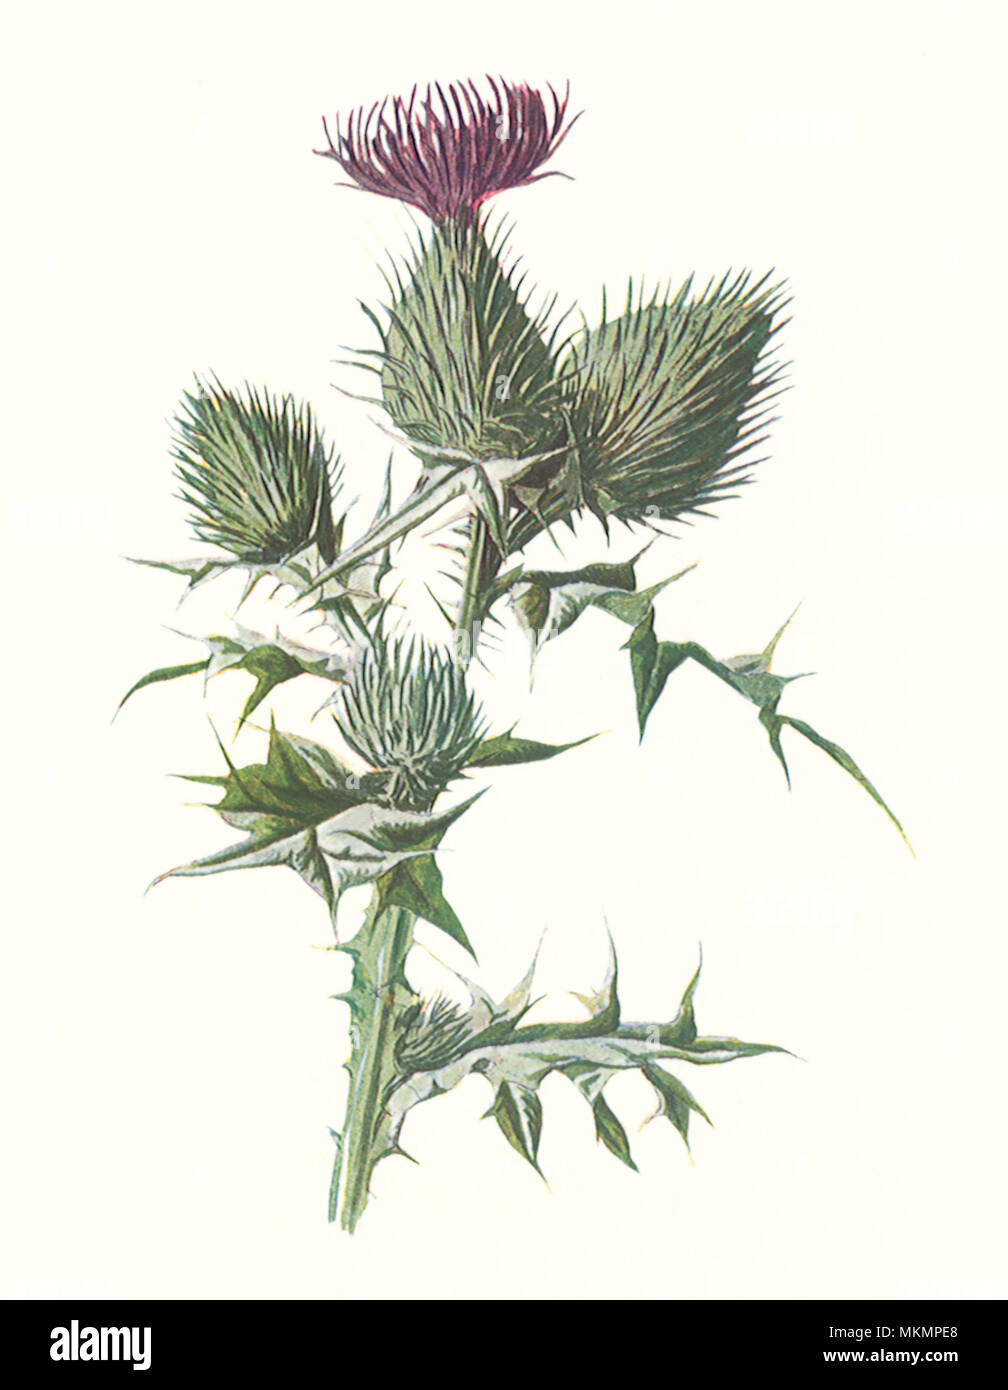 Spear-Plumed Thistle - Stock Image